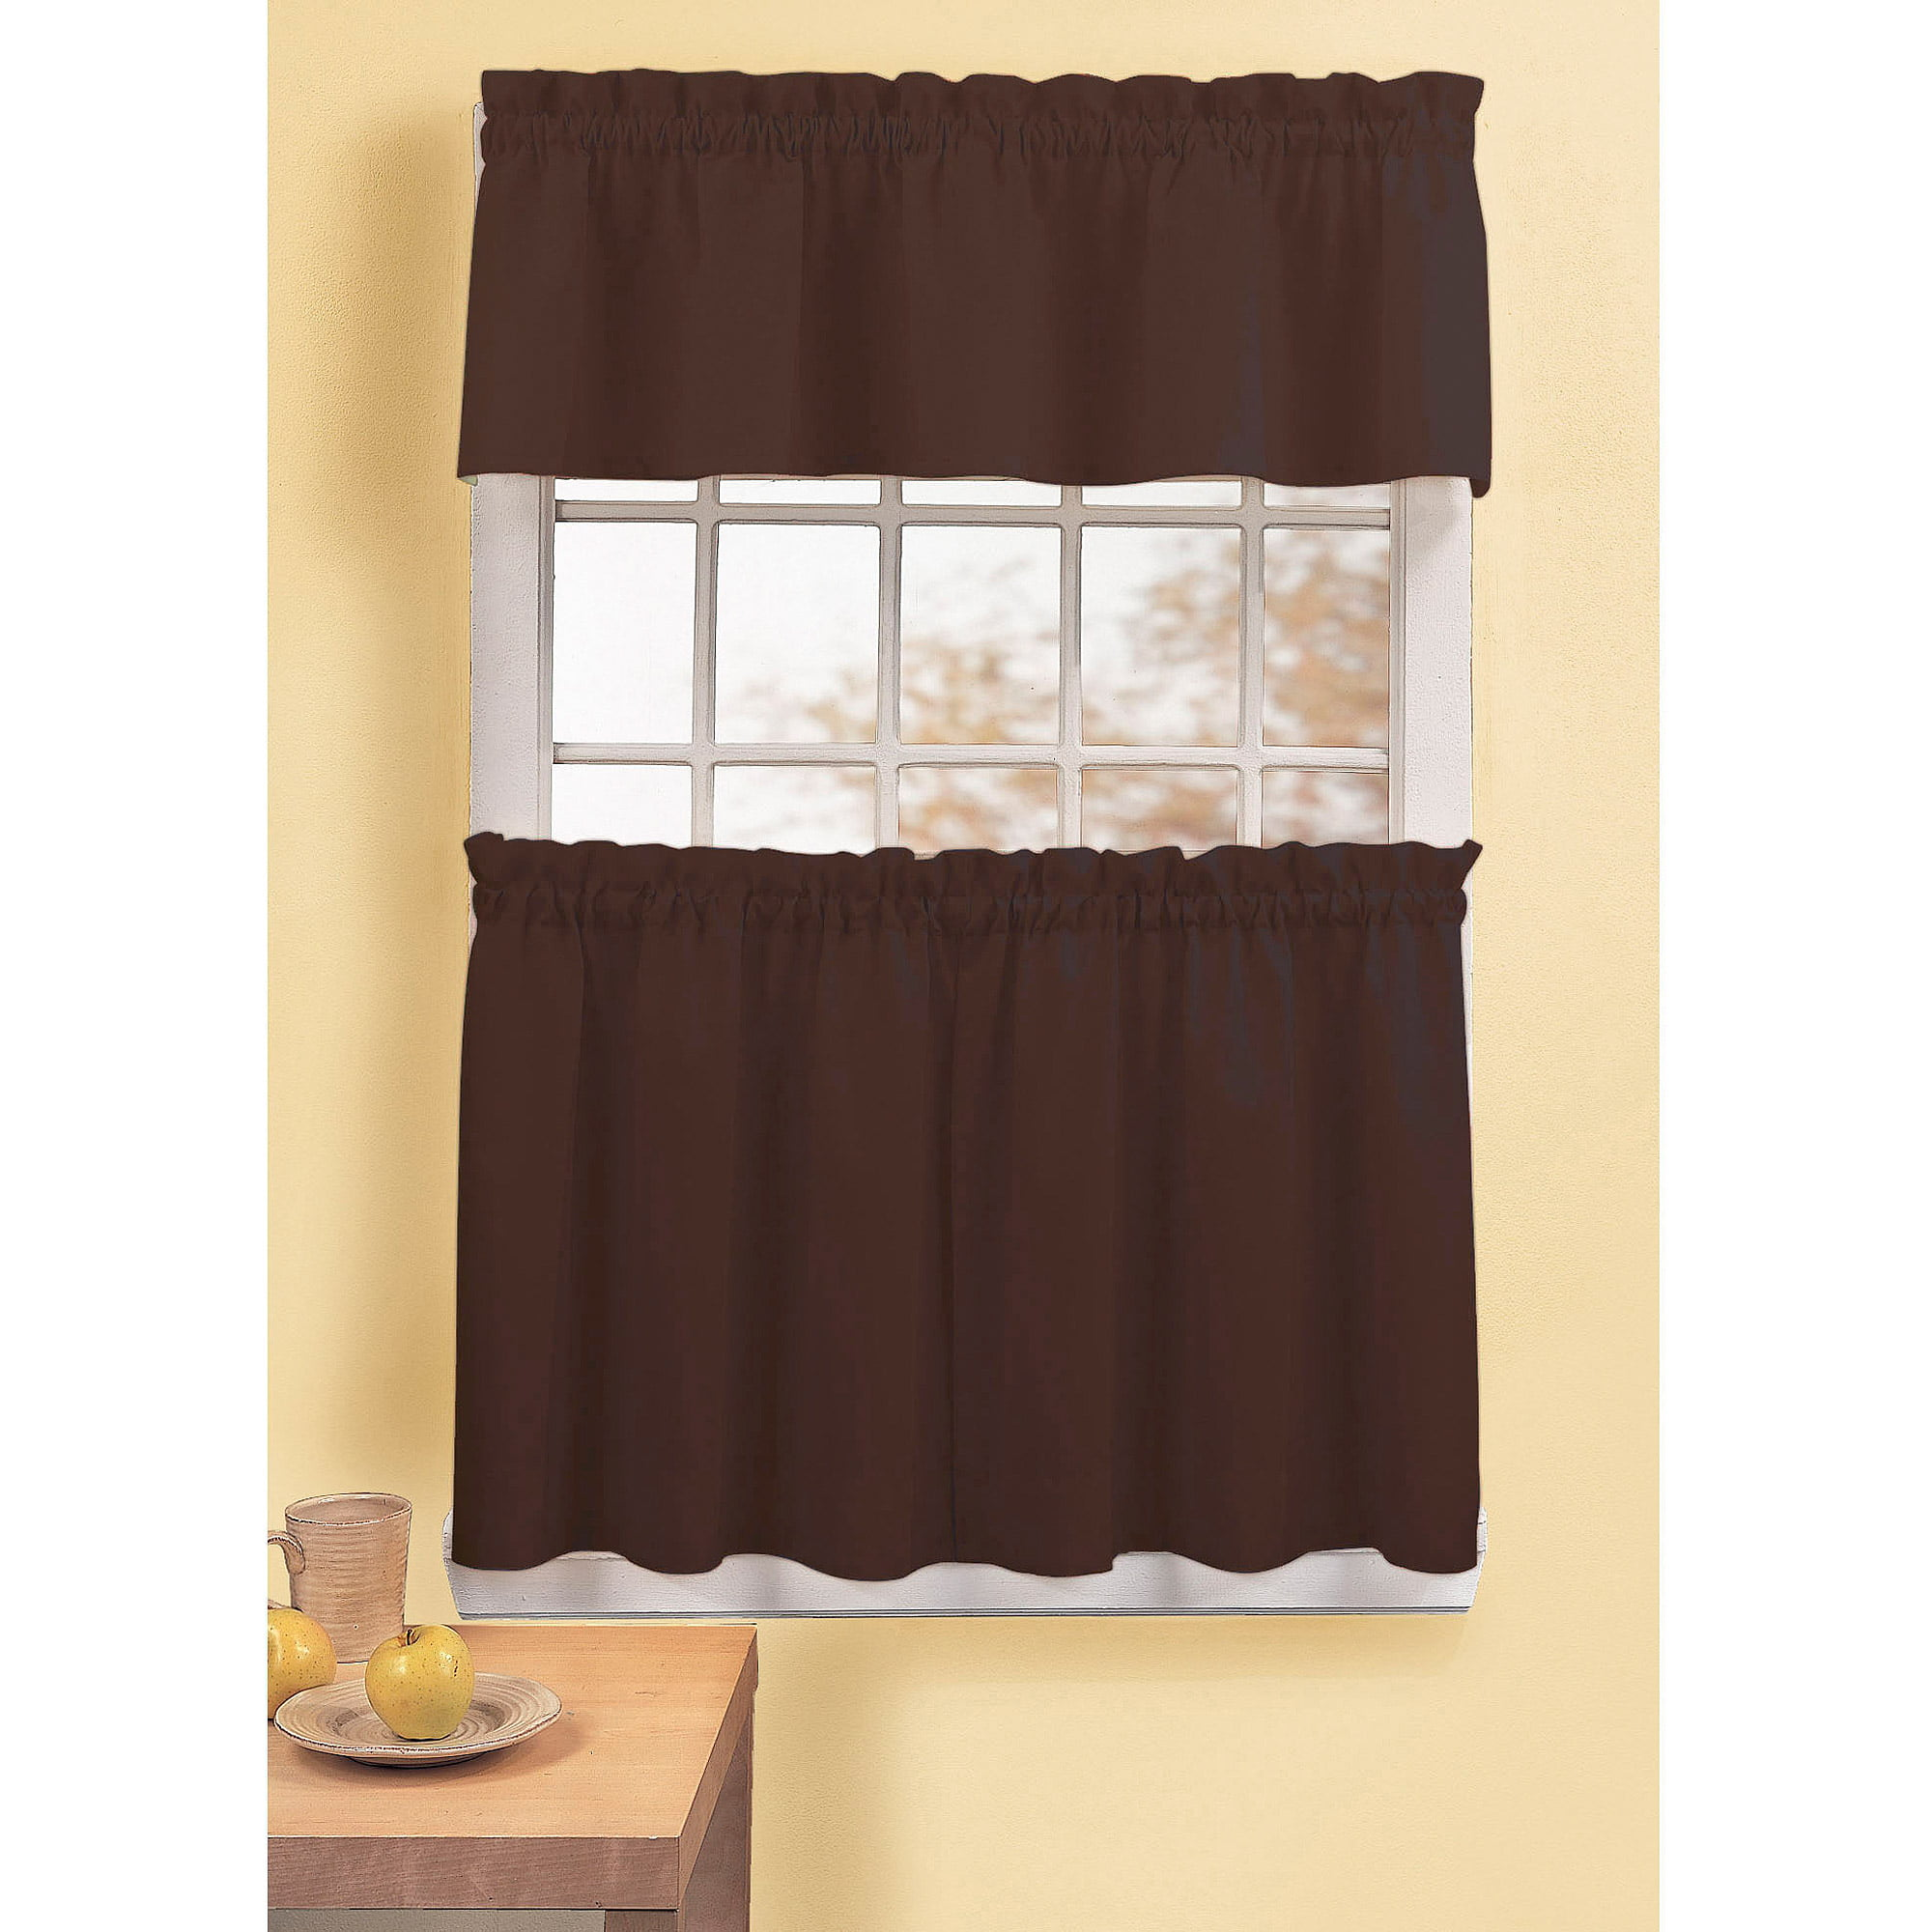 Kitchen Curtains And Valances: CHF & You Peachskin Kitchen Curtains, Set Of 2 Or Single